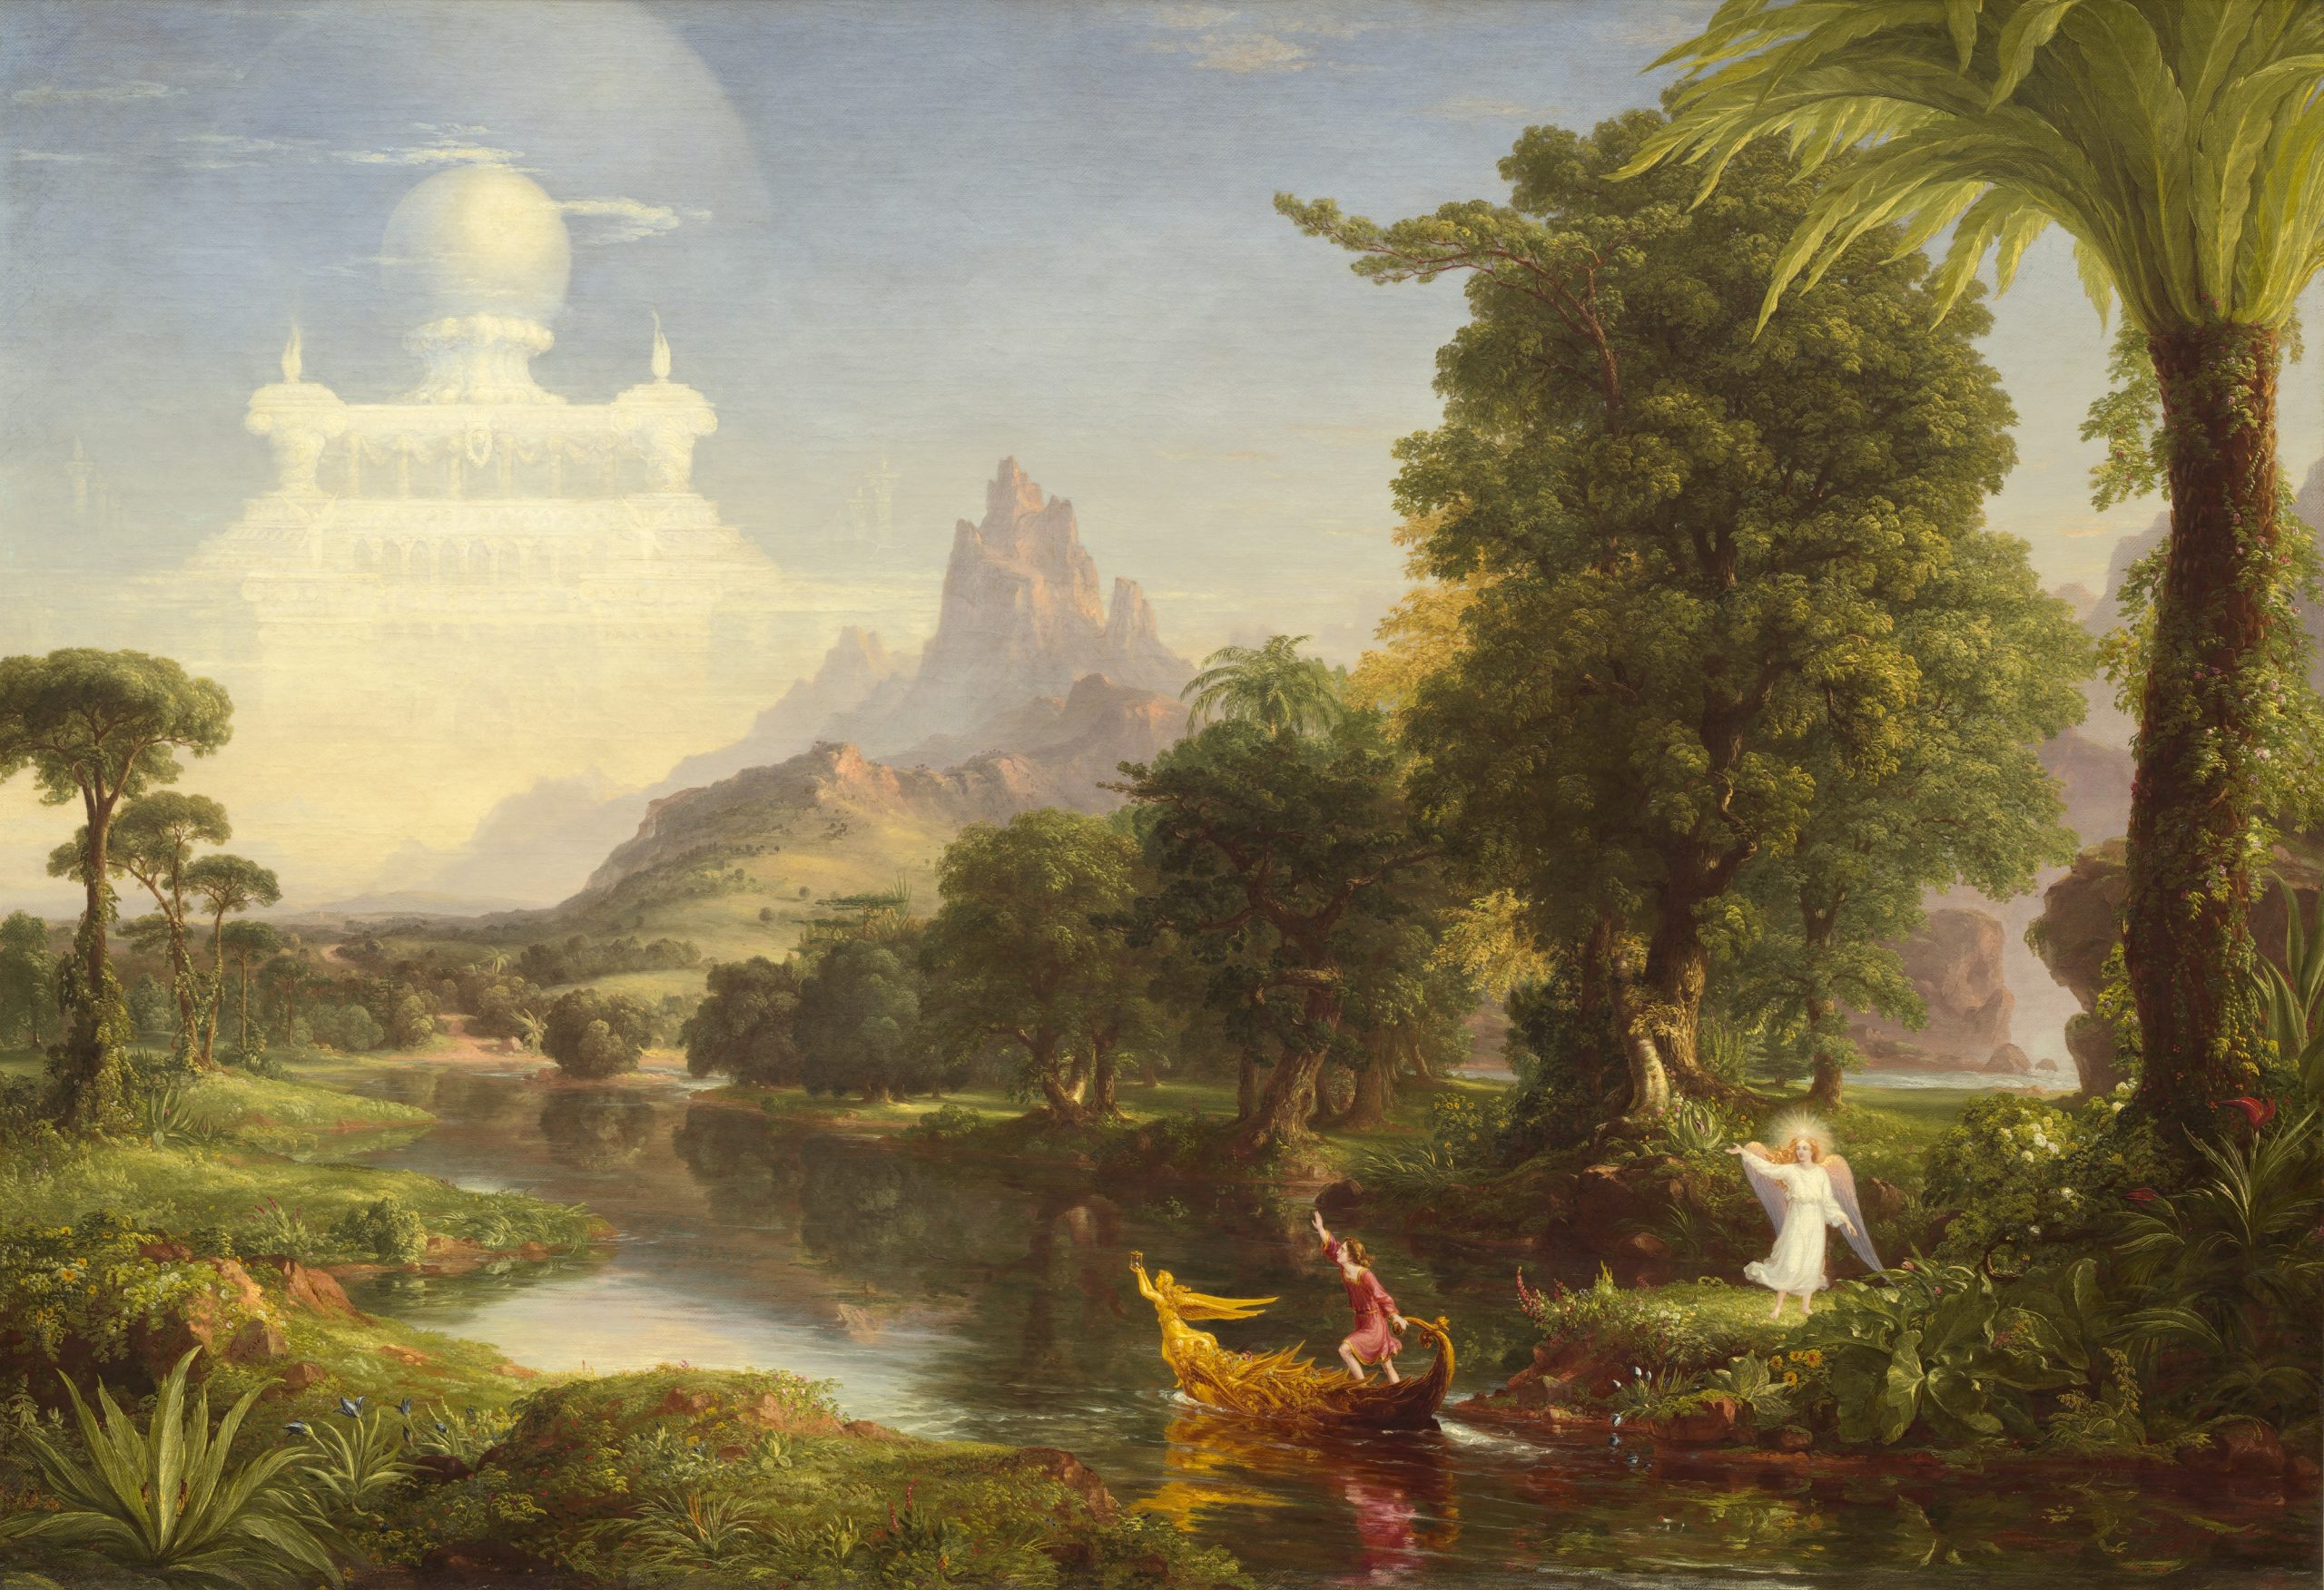 Thomas Cole, The Voyage of Life, 1842